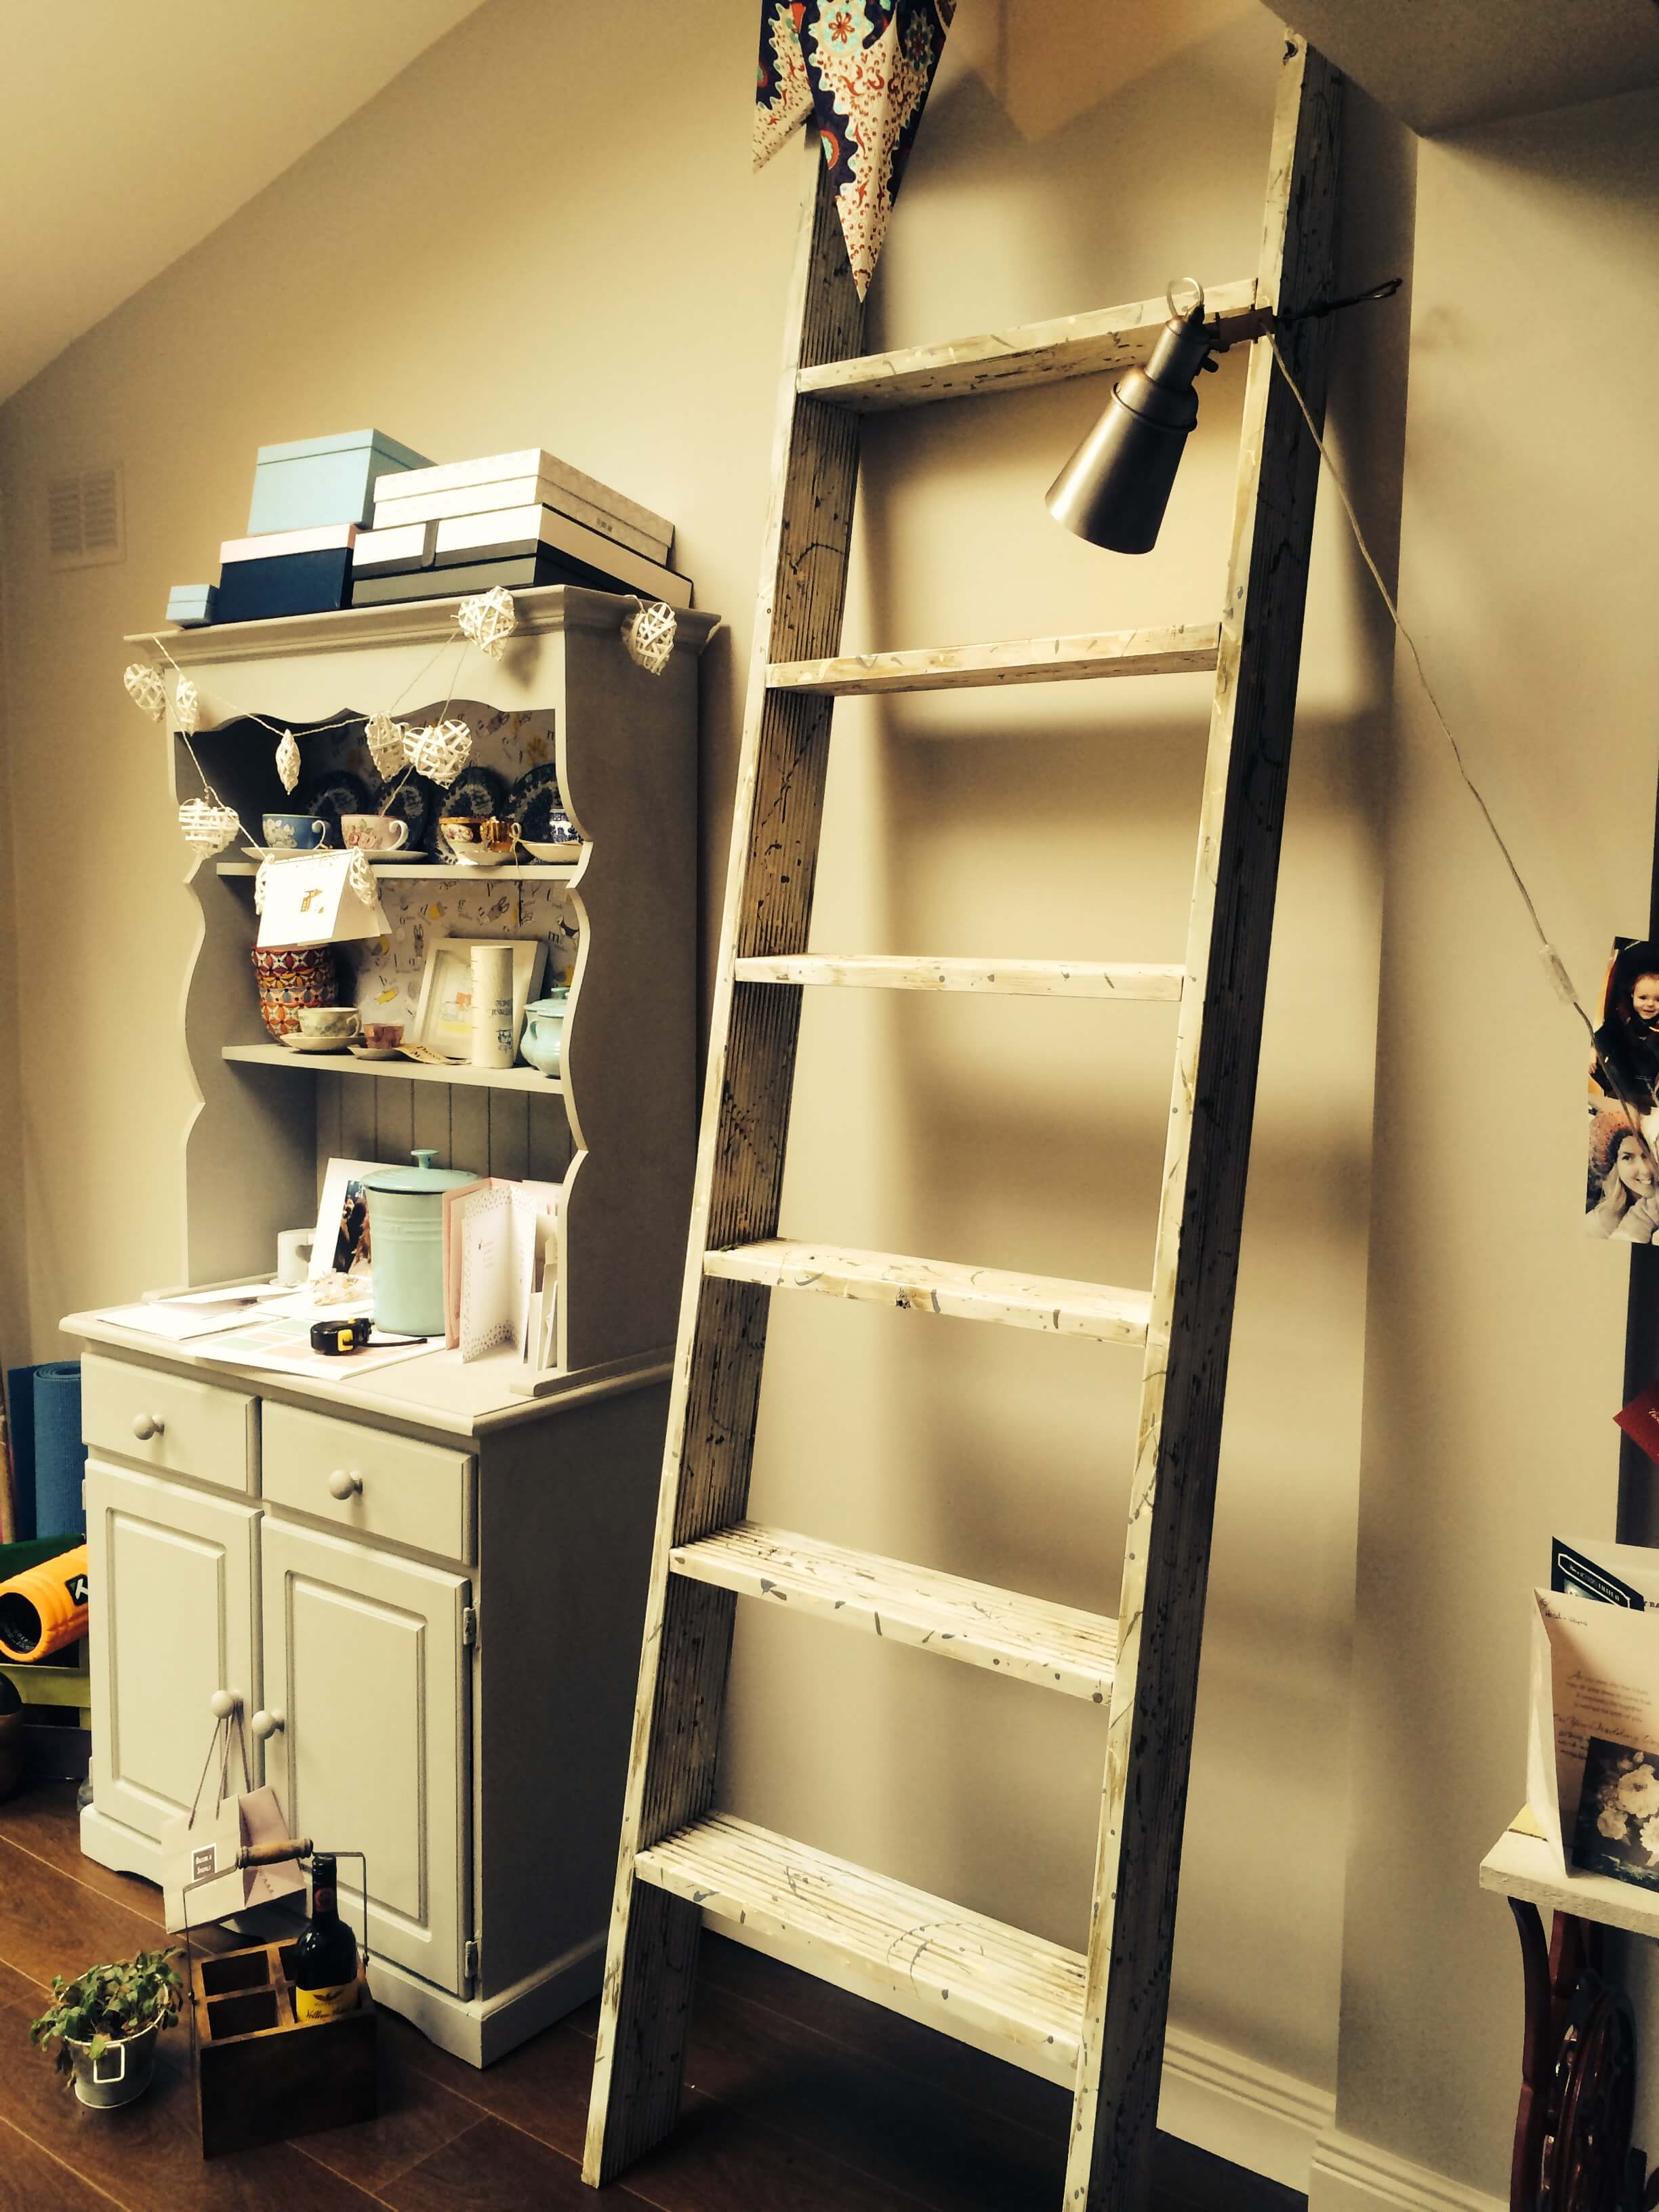 A side view of the shelving without any thing on the shelves. It perfectly fits into a small nook next to the vintage cabinet.